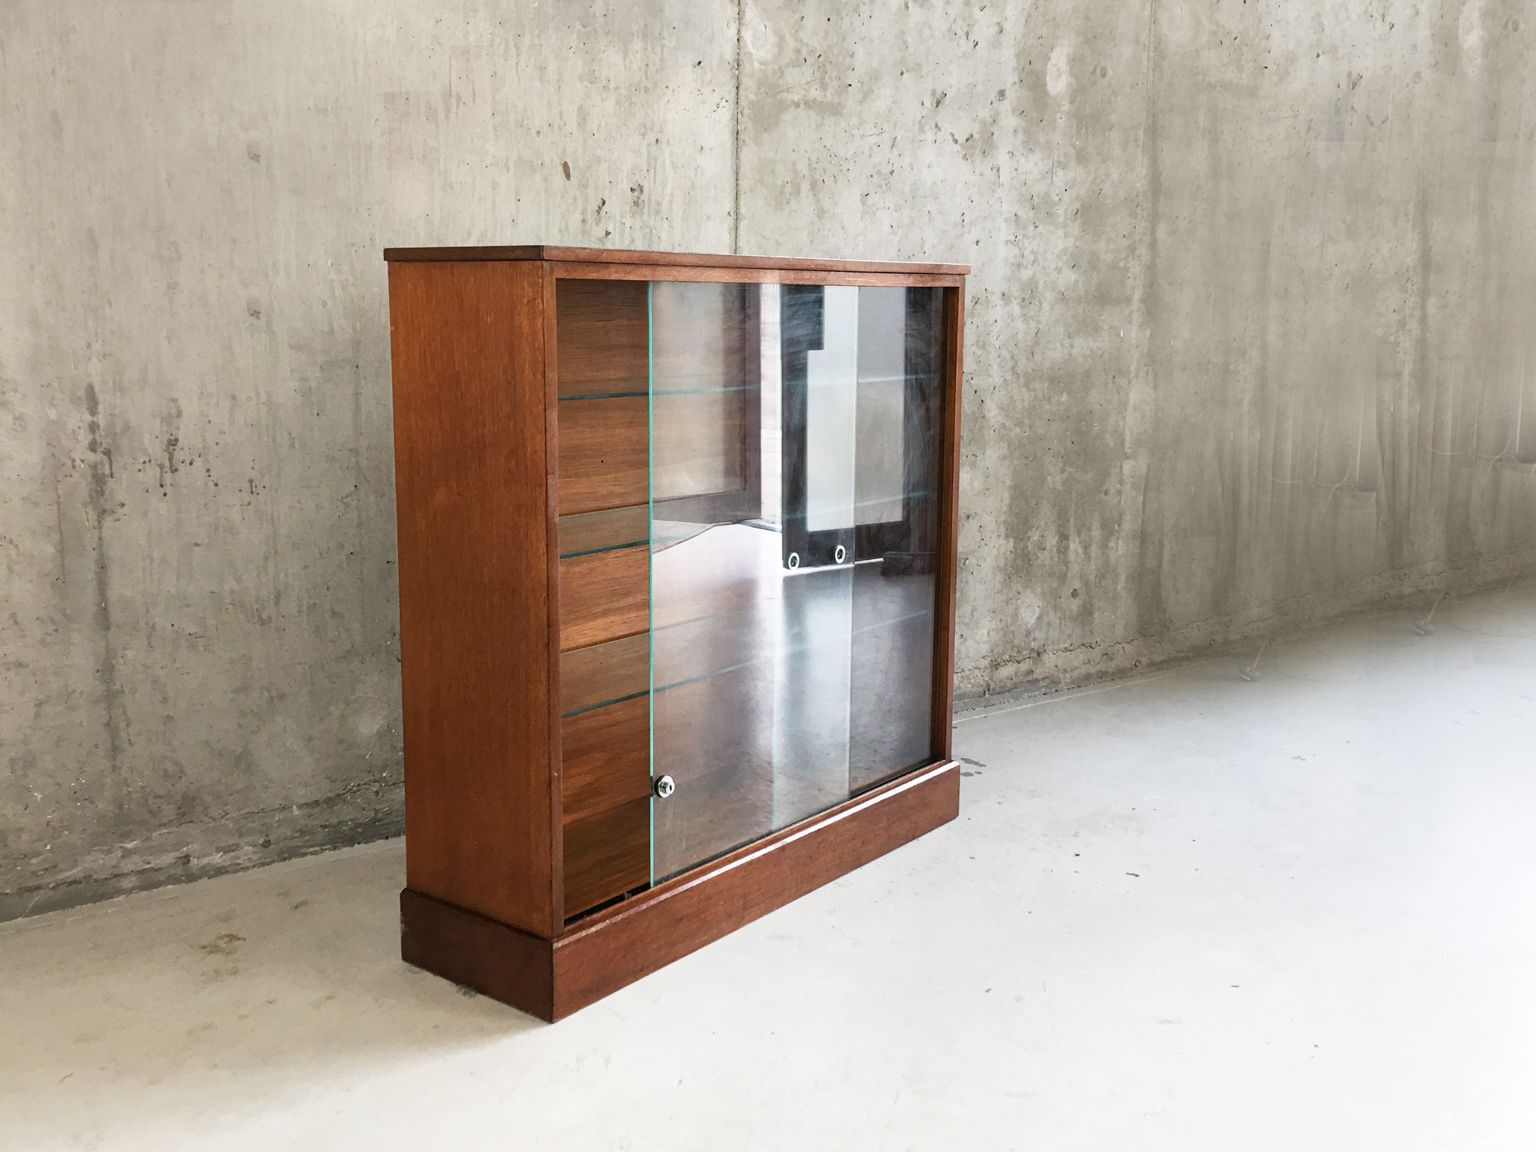 teak b cherschrank mit schiebet ren aus glas 1970er bei pamono kaufen. Black Bedroom Furniture Sets. Home Design Ideas